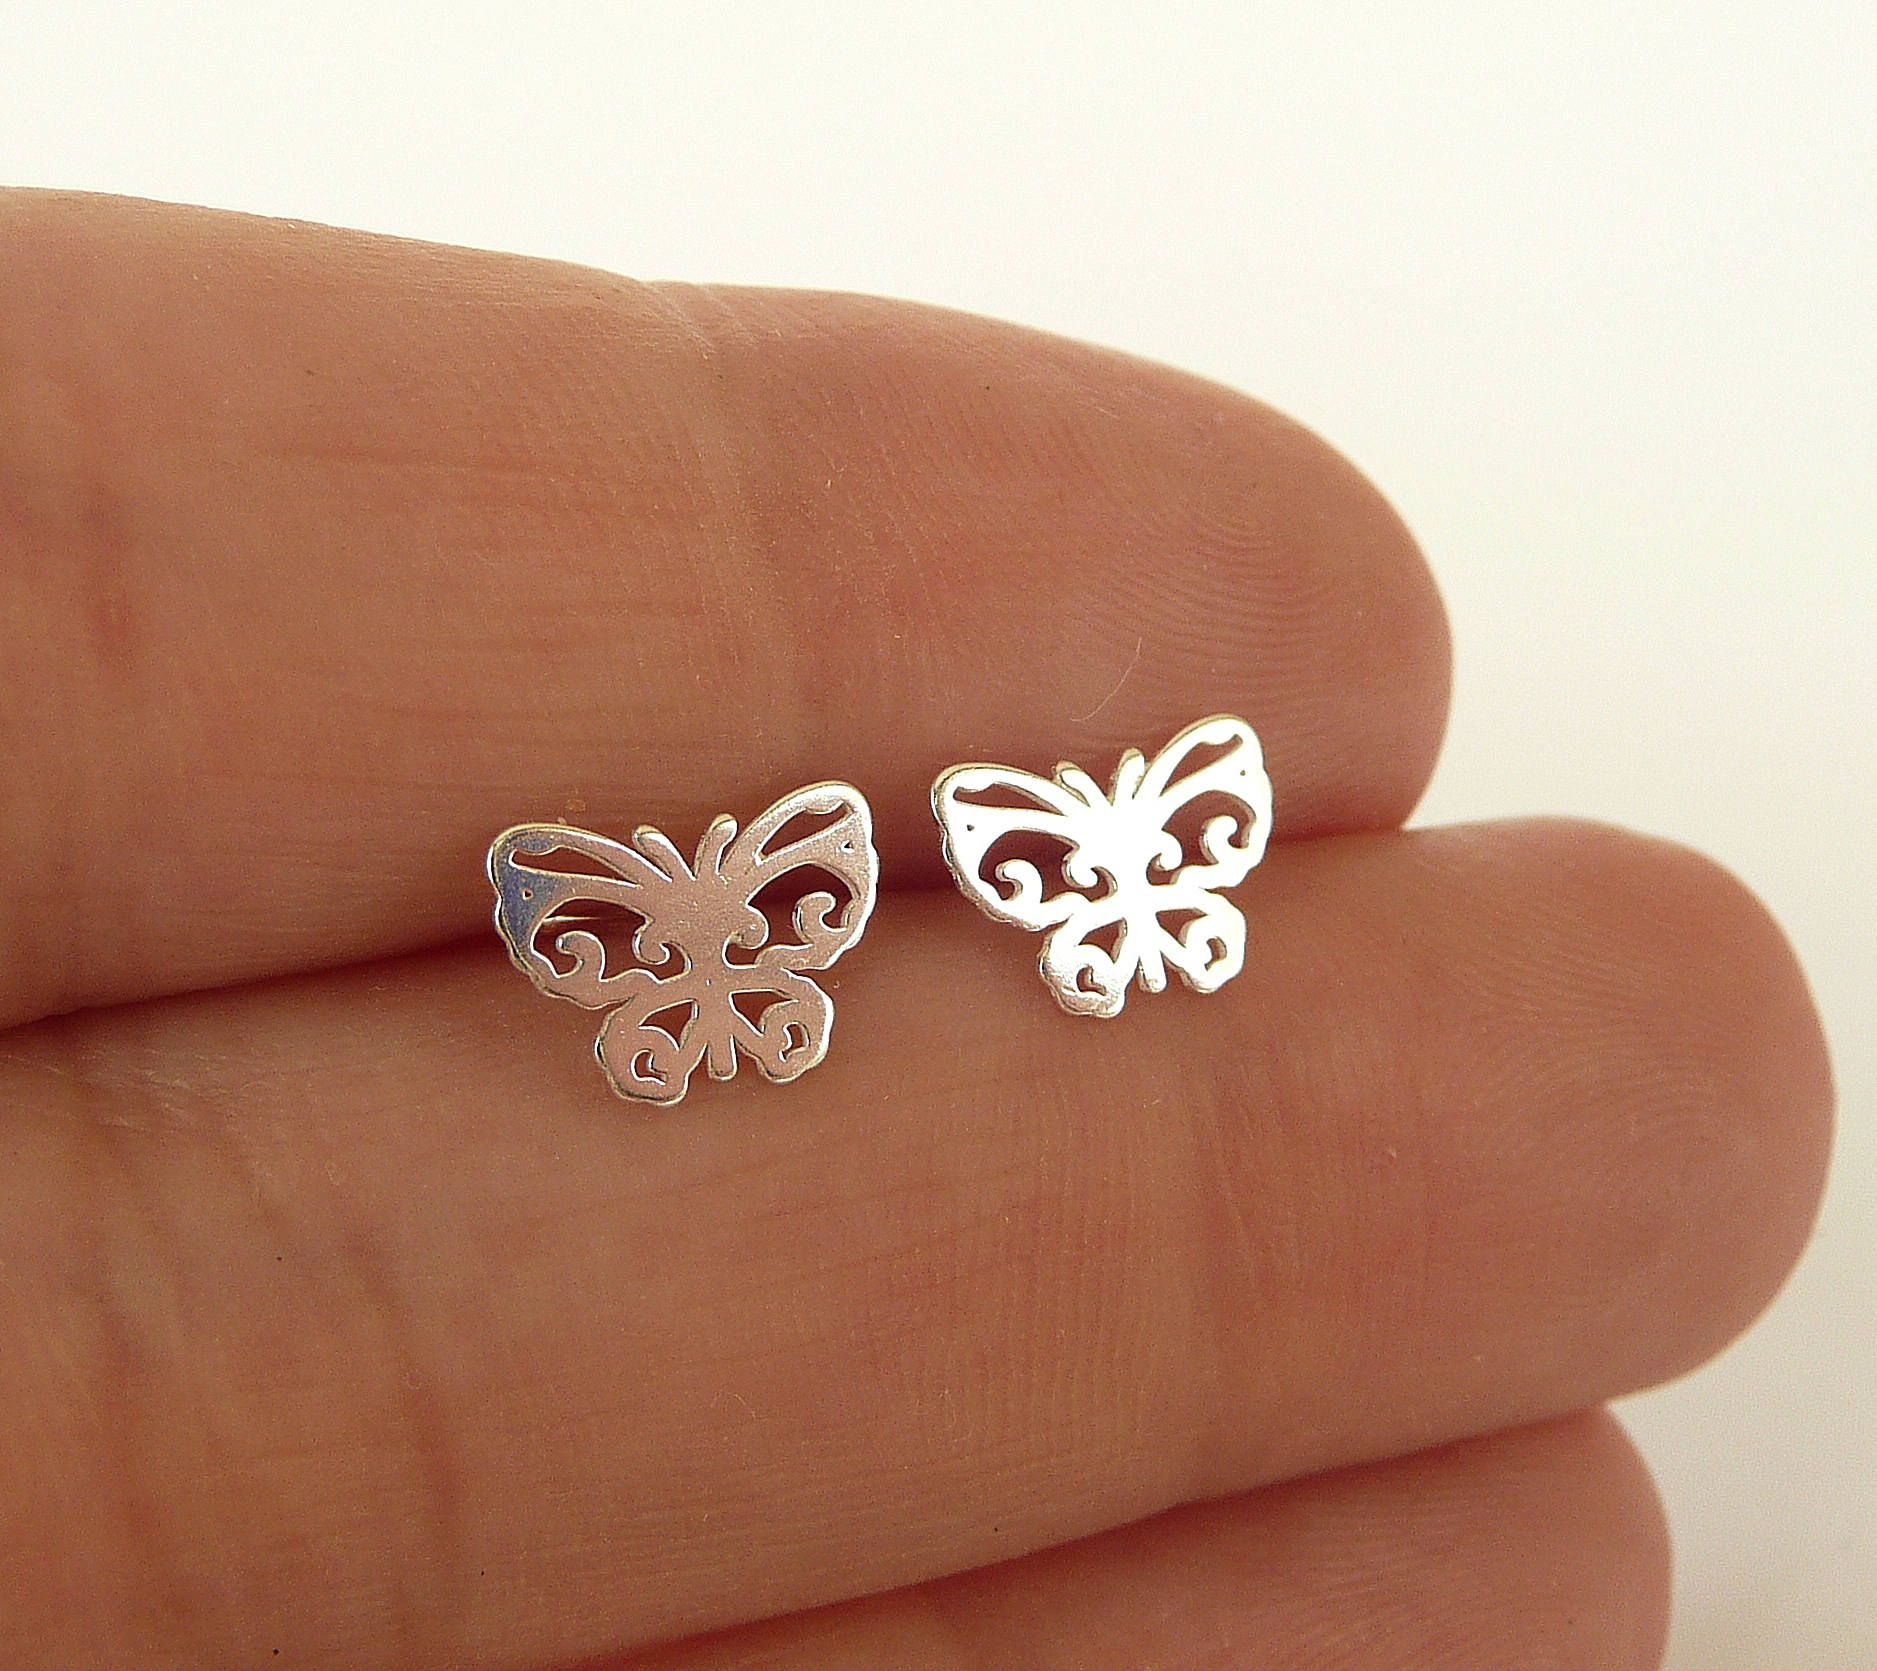 Cute New White Gold Plated Silver Smooth /& Shiny 4 Leaf Clover Stud Earrings for Women Lady